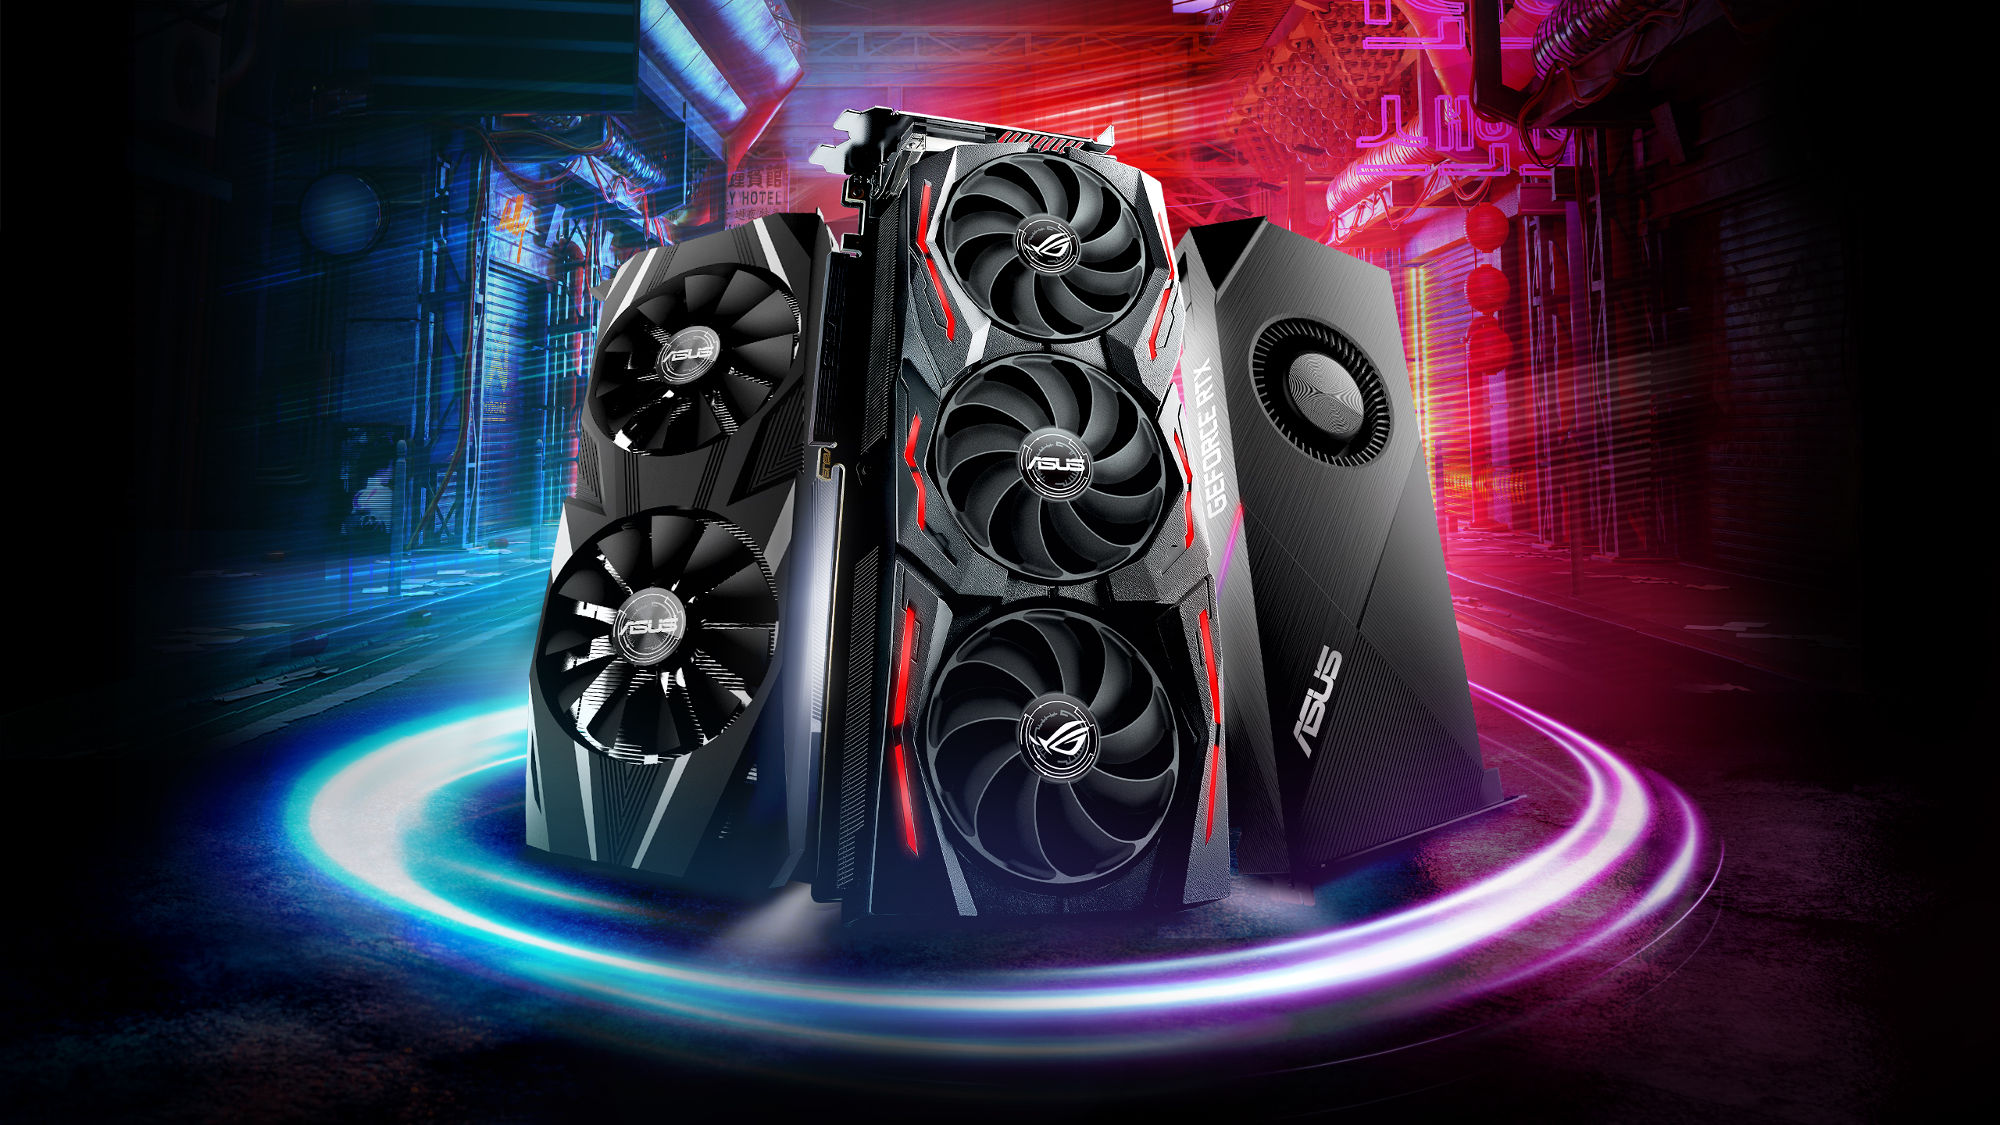 Here come the ROG and ASUS GeForce RTX 2070 graphics cards | ROG